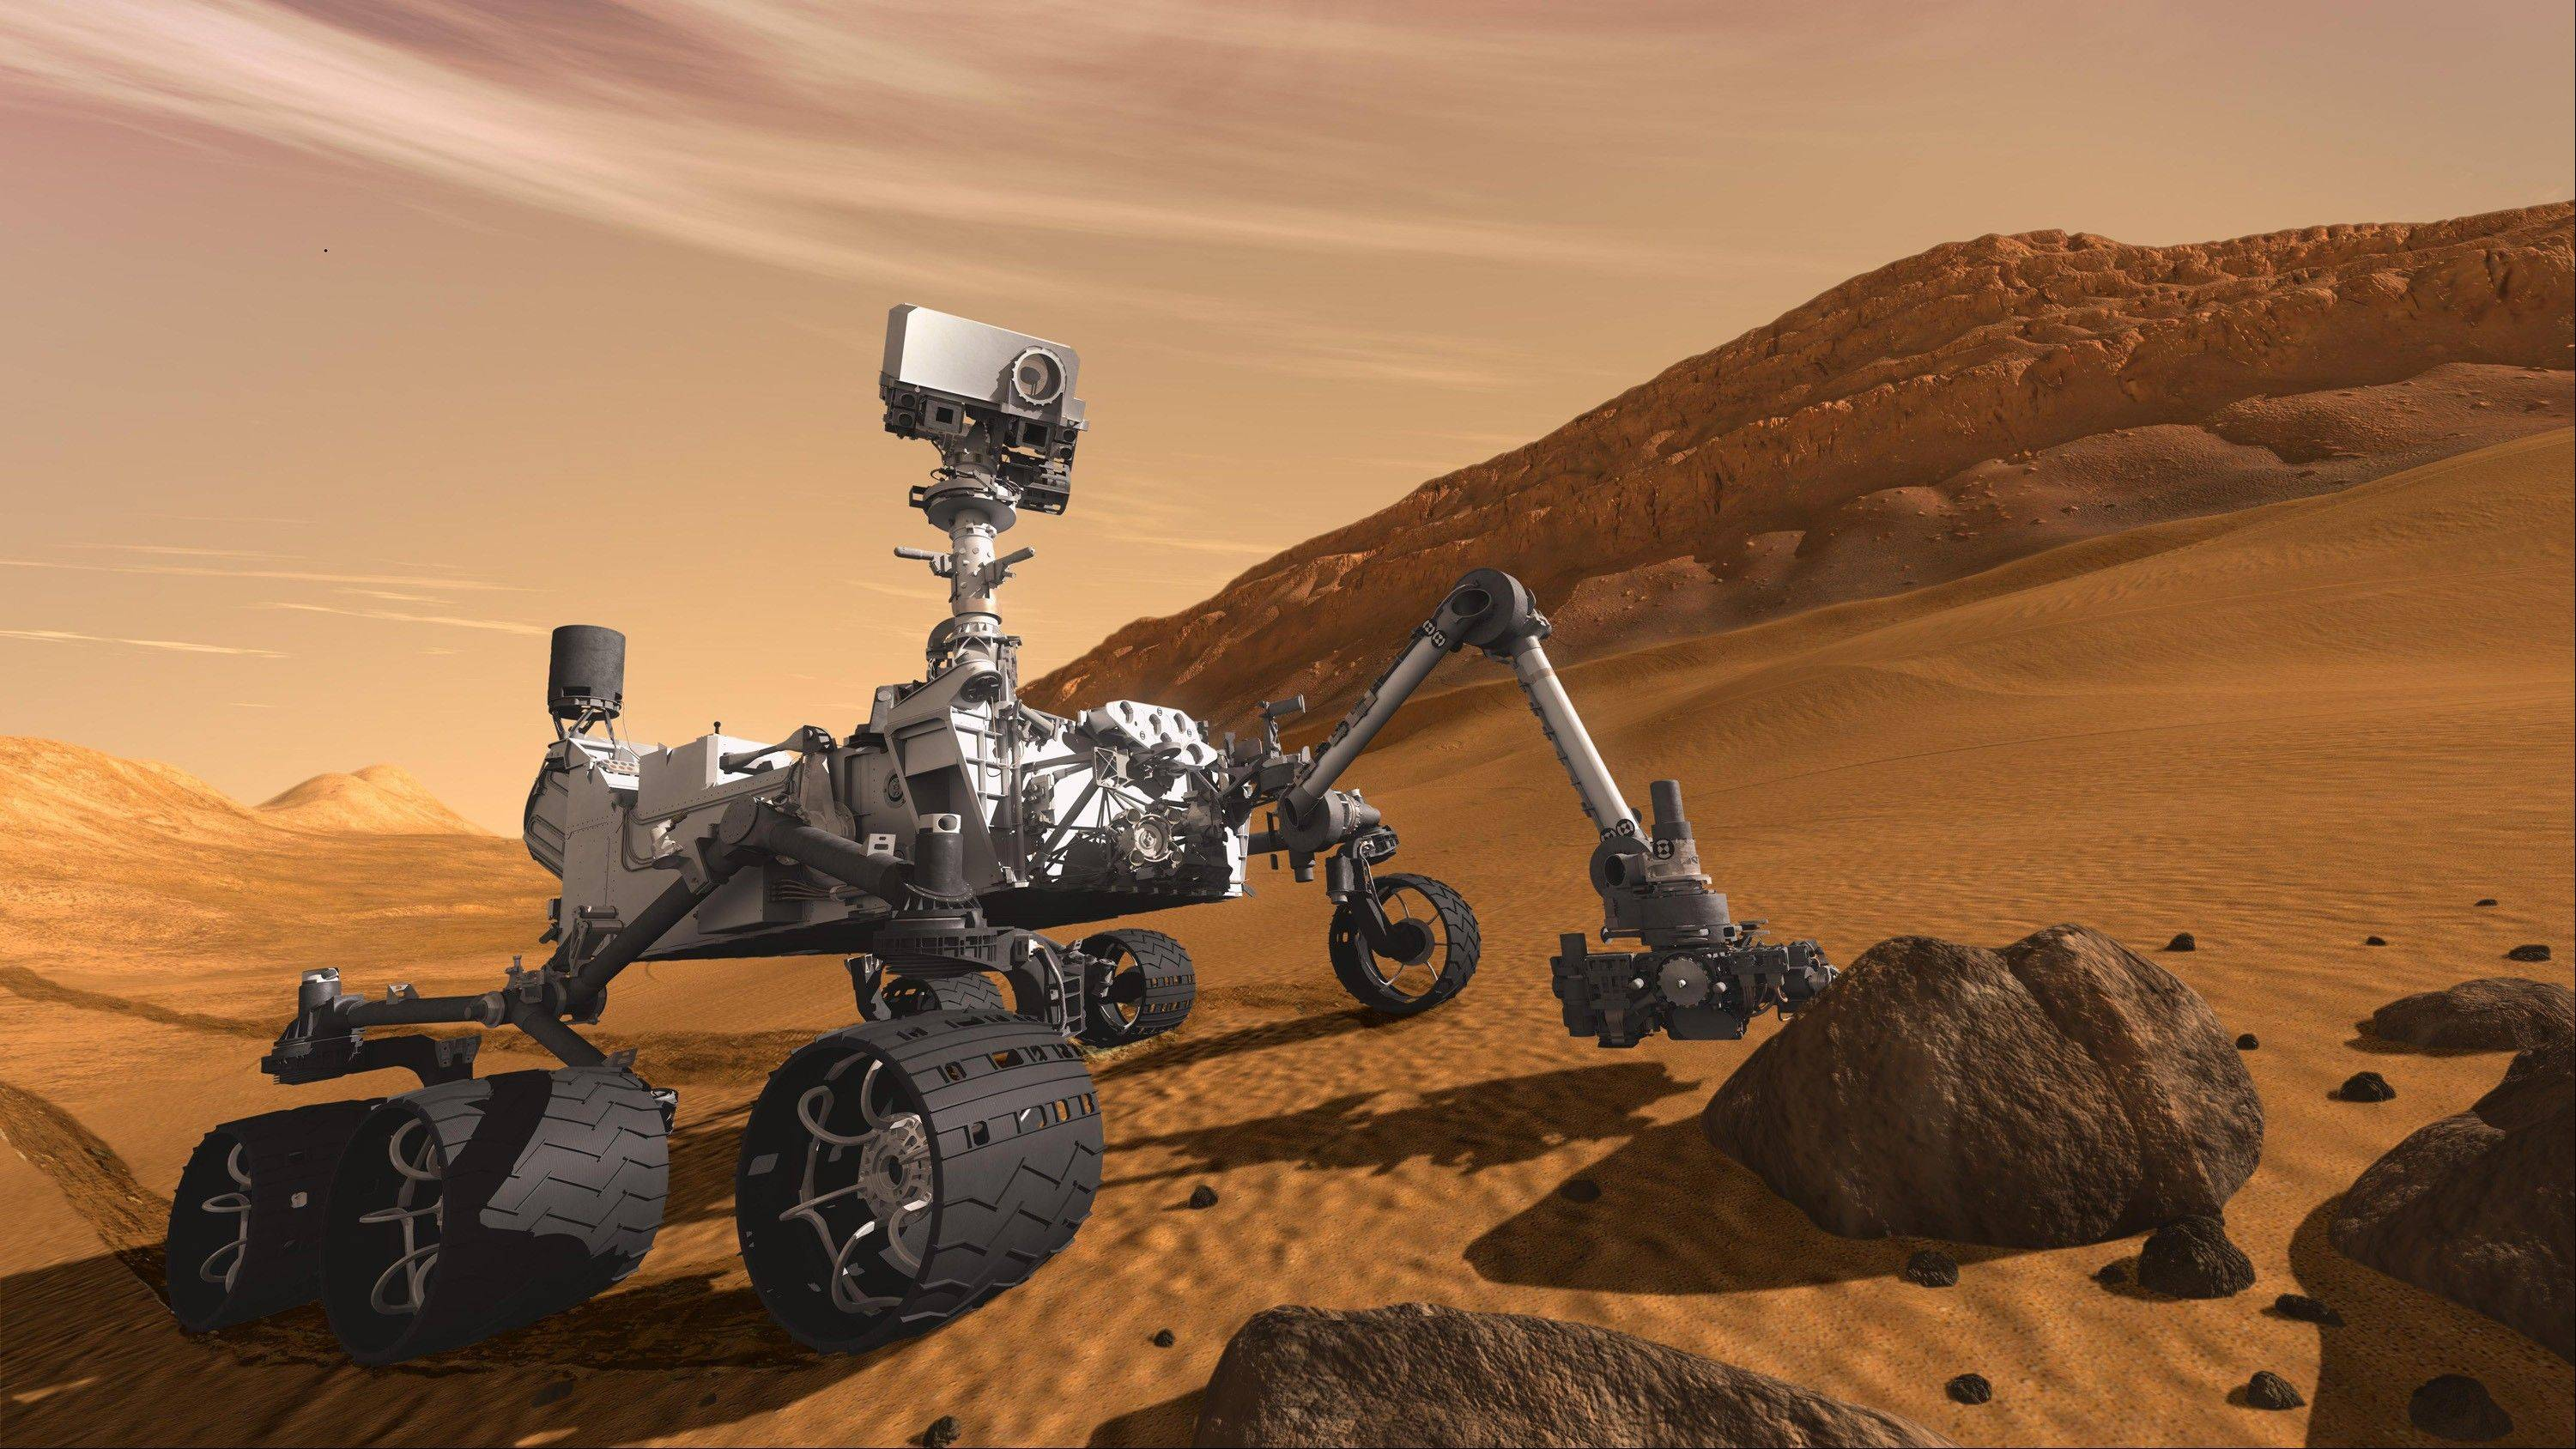 In this 2011 artist's rendering provided by NASA/JPL-Caltech, the Mars Science Laboratory Curiosity rover examines a rock on Mars. After traveling 8 1/2 months and 352 million miles, Curiosity will attempt a landing on Mars the night of Aug. 5, 2012.